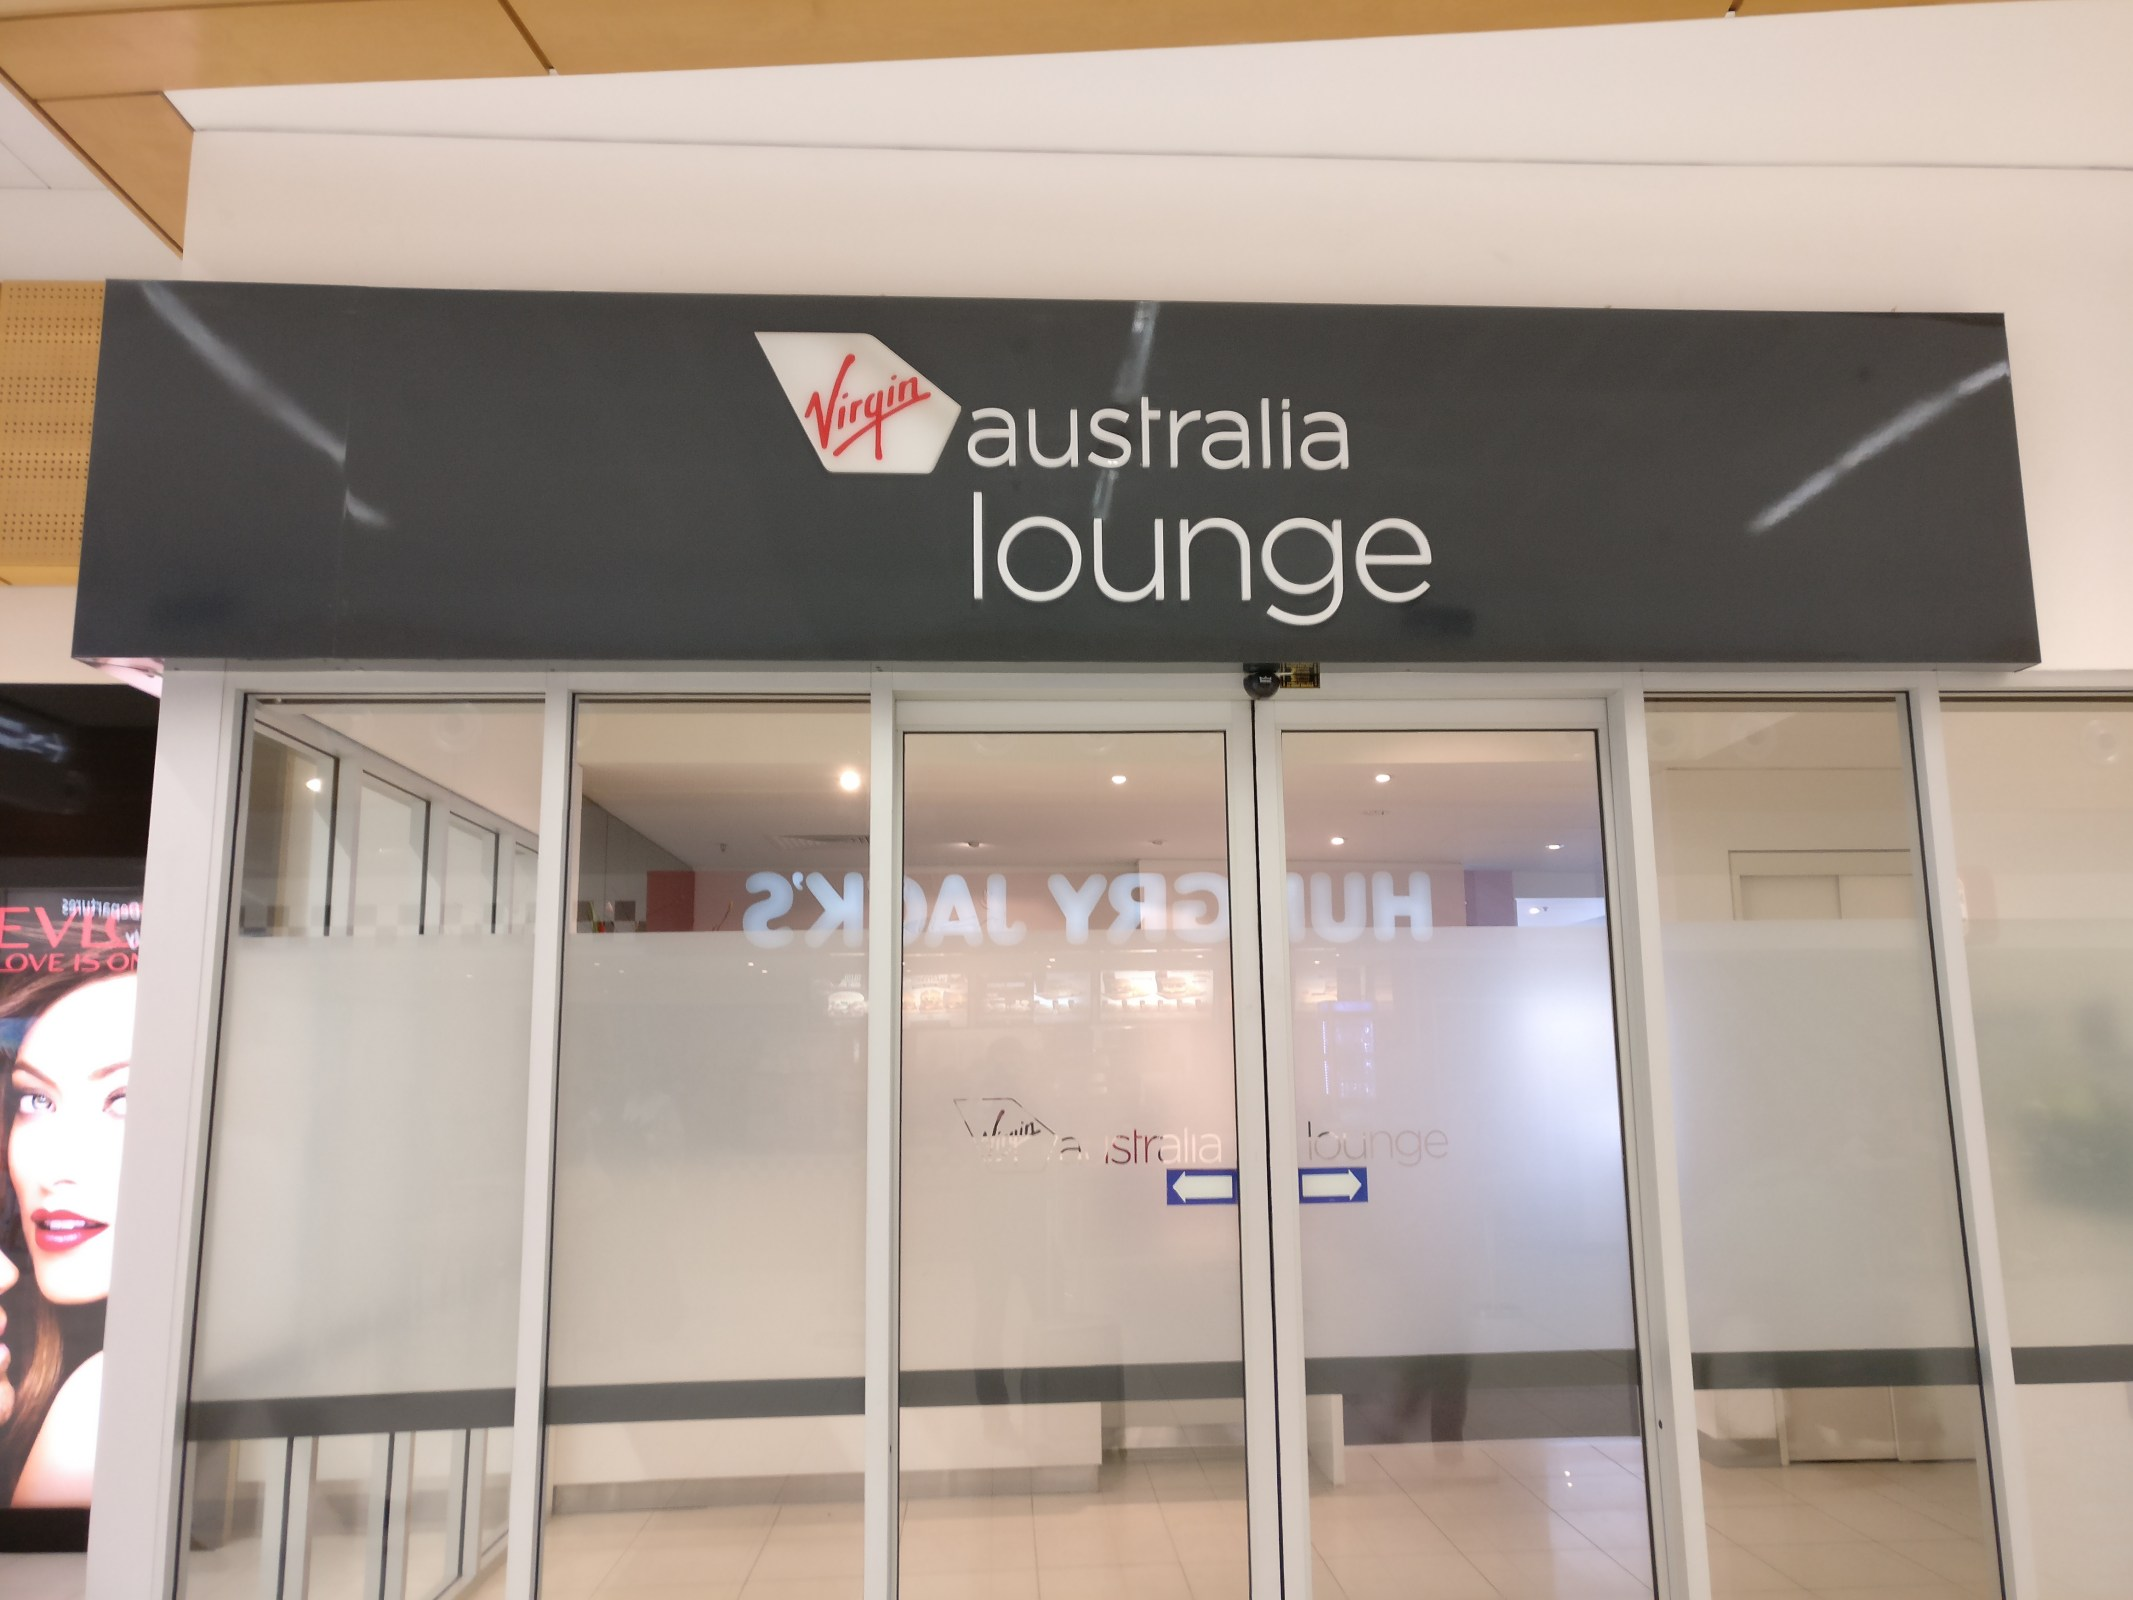 Virgin Australia Lounge Adelaide Entrance